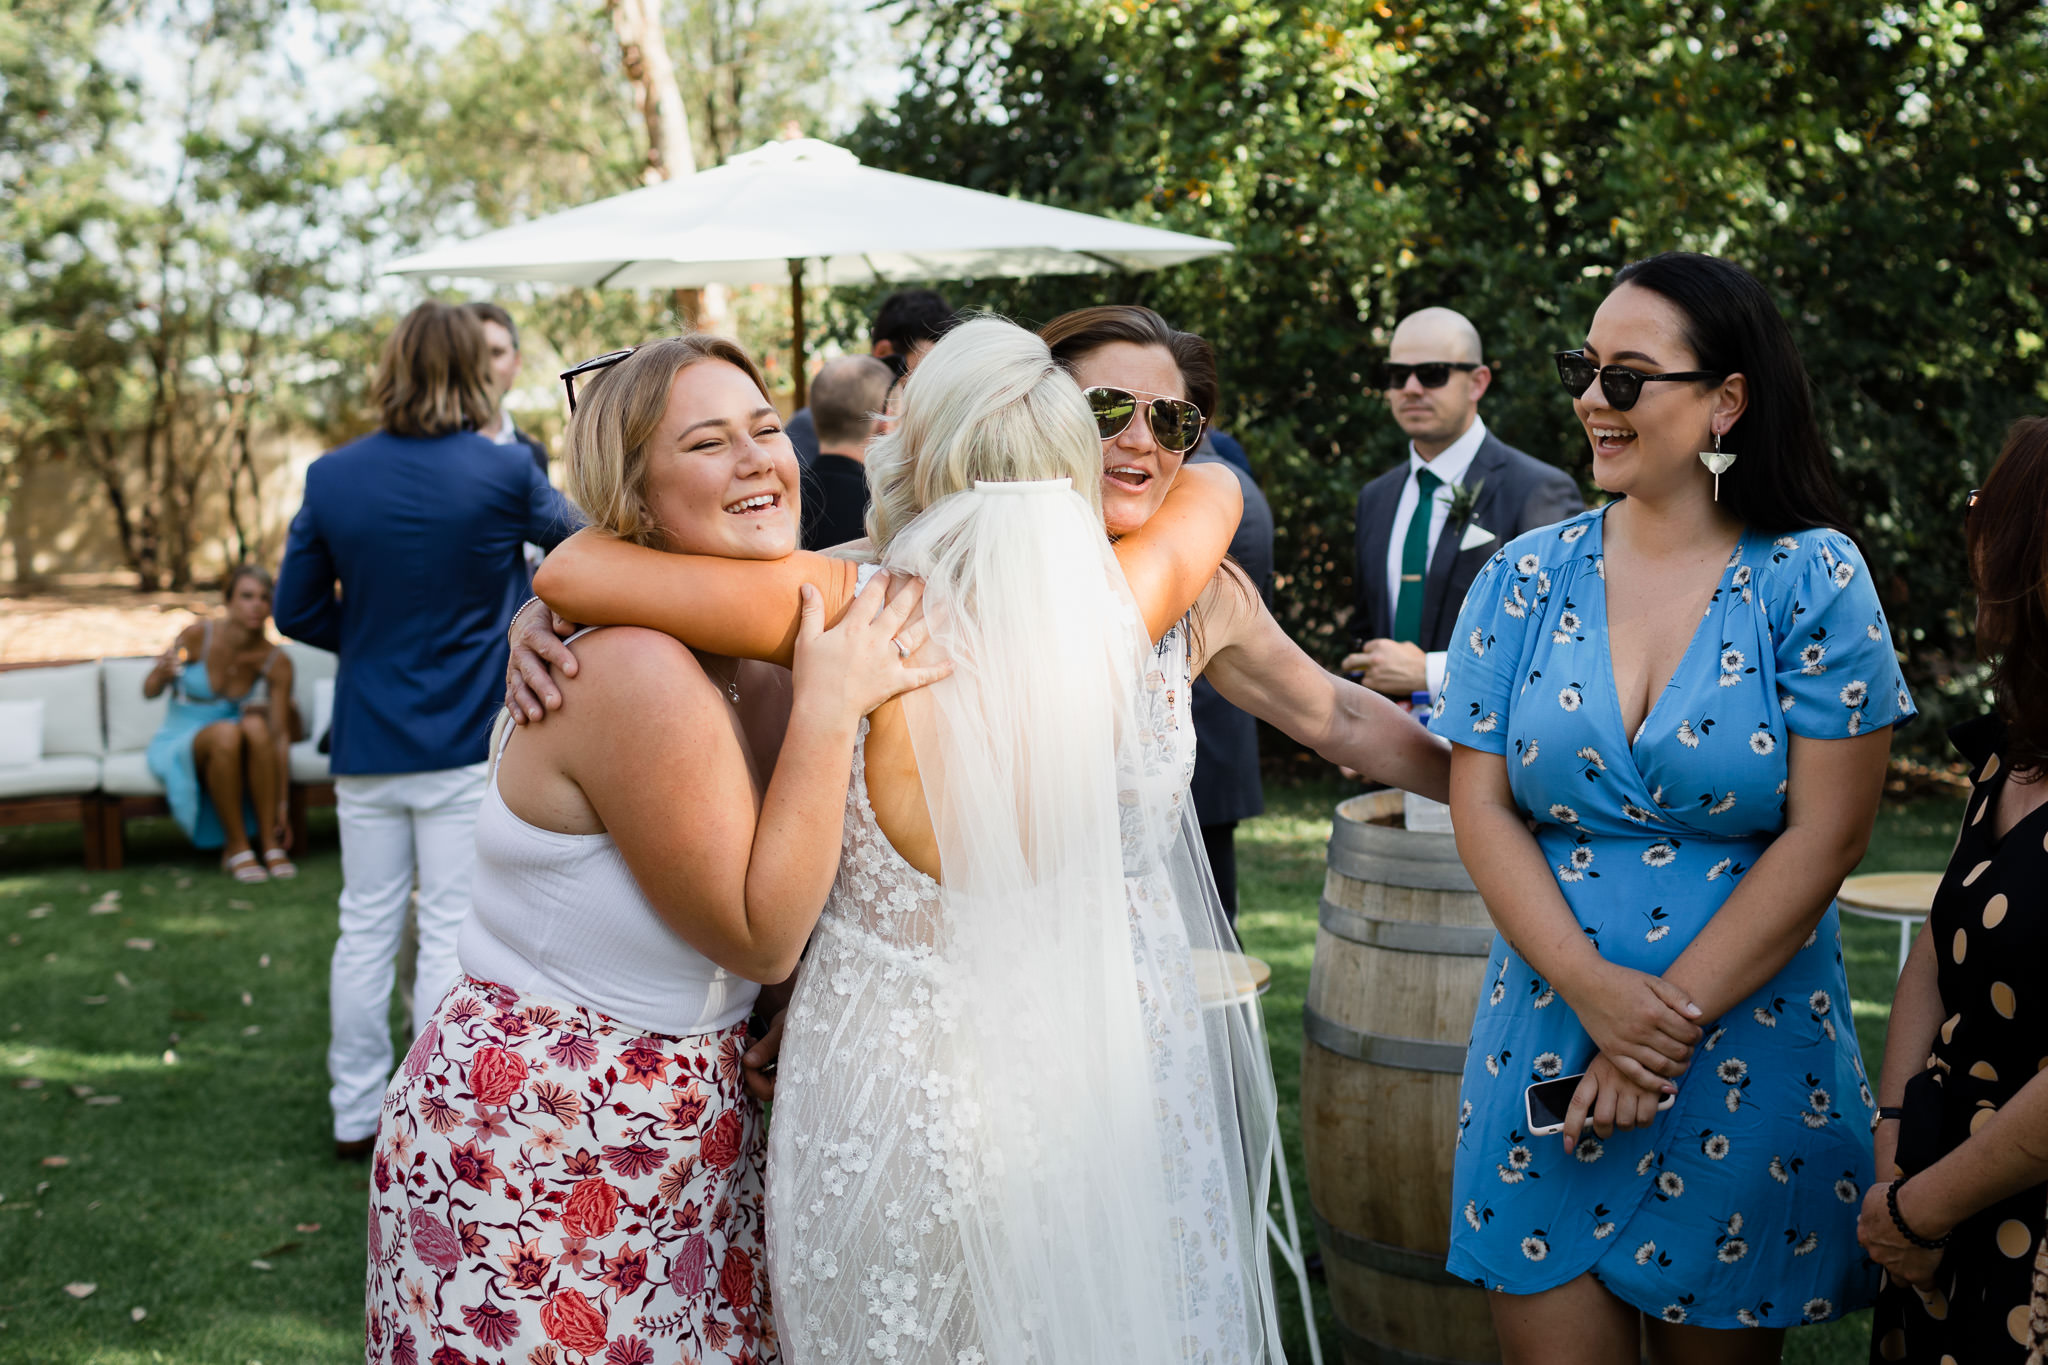 bride hugging two friends at outdoor wedding